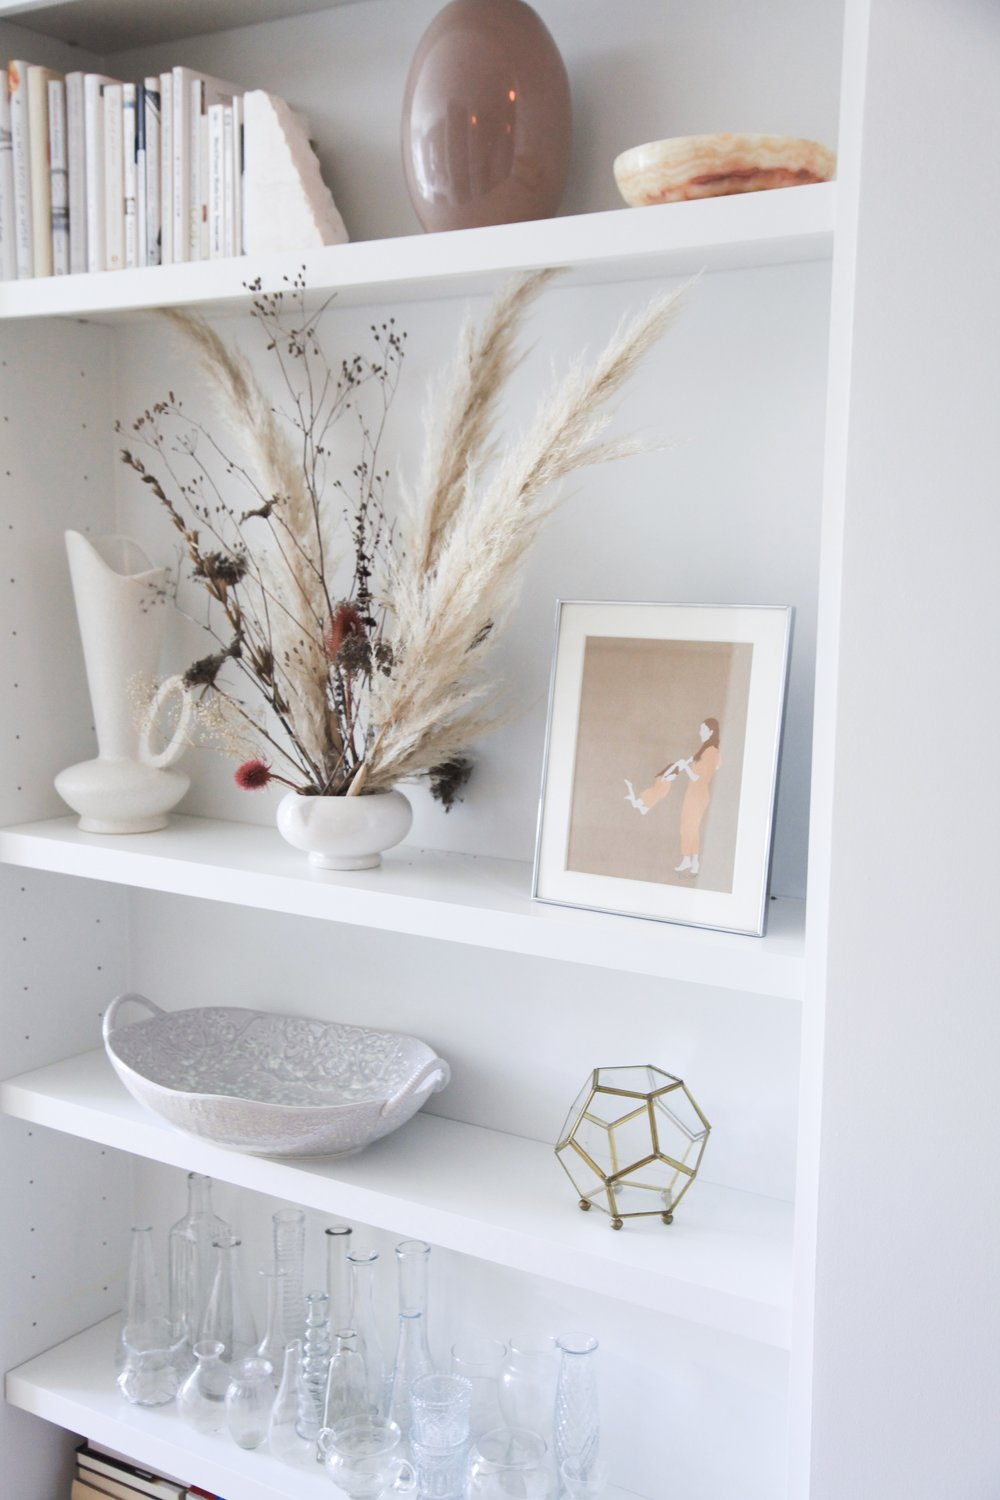 Style tip: Create a focal point and work around it. These dried flowers drew it all together .